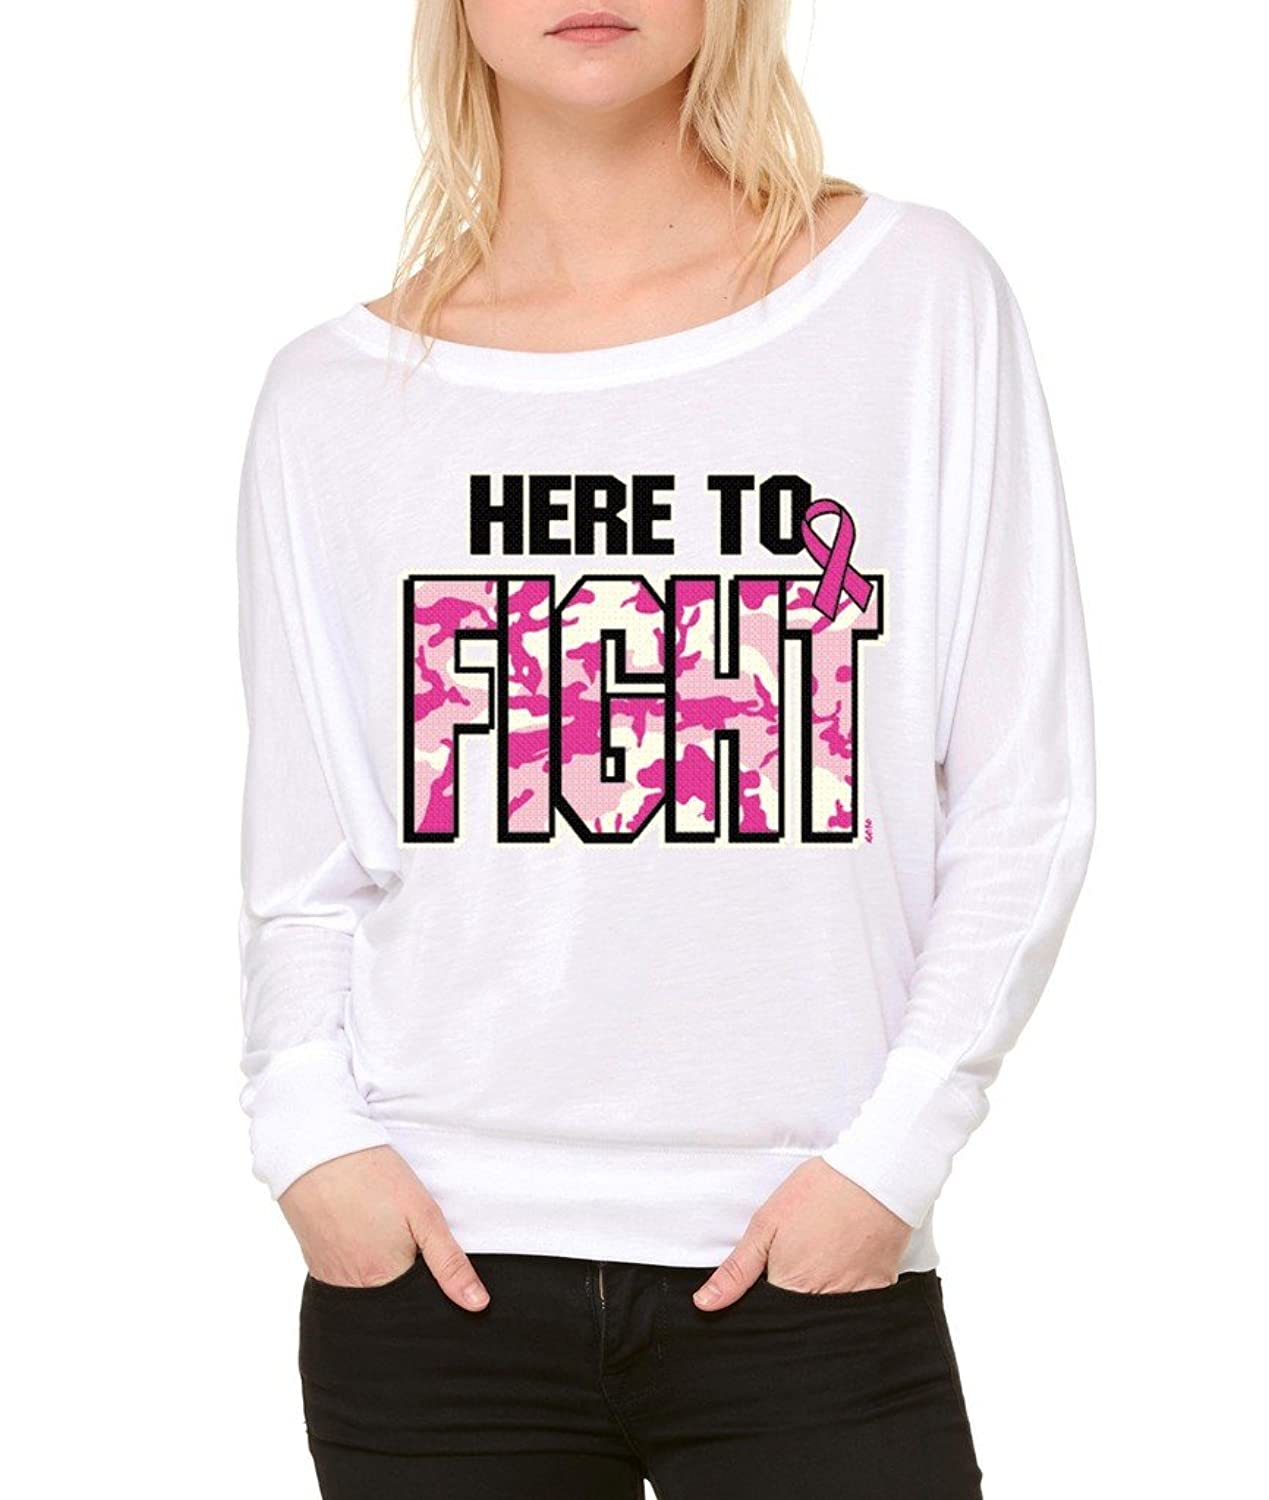 Here To Fight Pink Camo Fight Back Long-Sleeve Breast Cancer Awareness Flowy Shirt